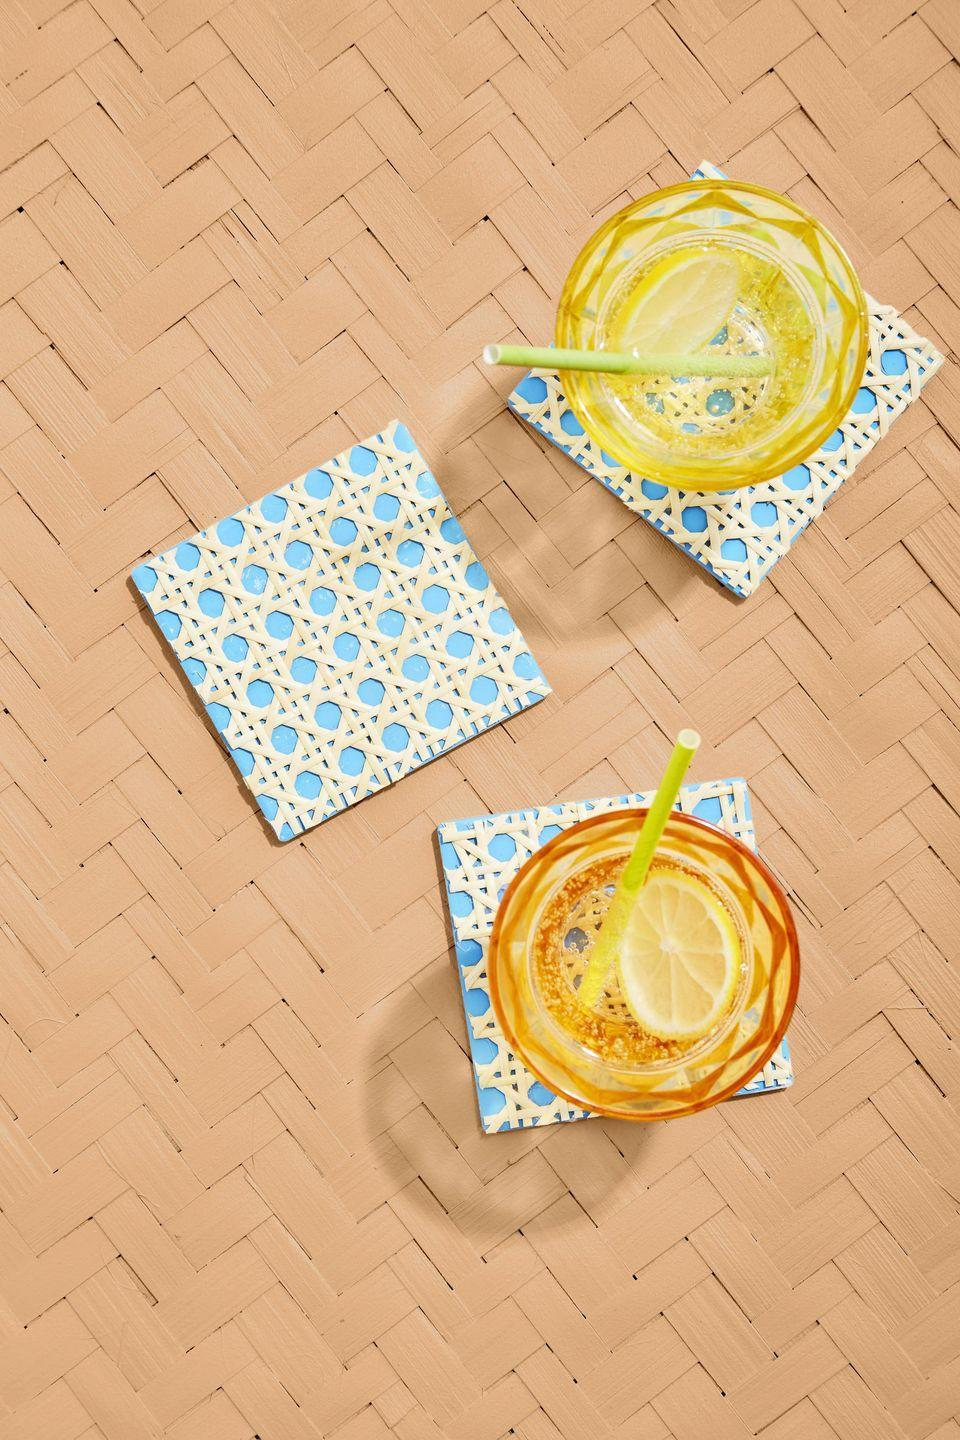 """<p>The base for these coaster can be painted any color so they'll fit right in to your already existing decor.<strong><br></strong><strong><br>To make:</strong> Paint unglazed ceramic coasters (<a href=""""https://www.amazon.com/Bisque-tiles-unpainted-use-underglazes/dp/B0019LS2VI/ref=sr_1_14"""" rel=""""nofollow noopener"""" target=""""_blank"""" data-ylk=""""slk:$14 for 10; amazon.com"""" class=""""link rapid-noclick-resp"""">$14 for 10;<em> amazon.com</em></a>) desired color. Cut pieces of caning that are just larger than the coasters. Spray the backs of the caning with adhesive spray, such as Super 77, then attach to the coasters, pressing to adhere. Trim excess caning with scissors.<br></p>"""